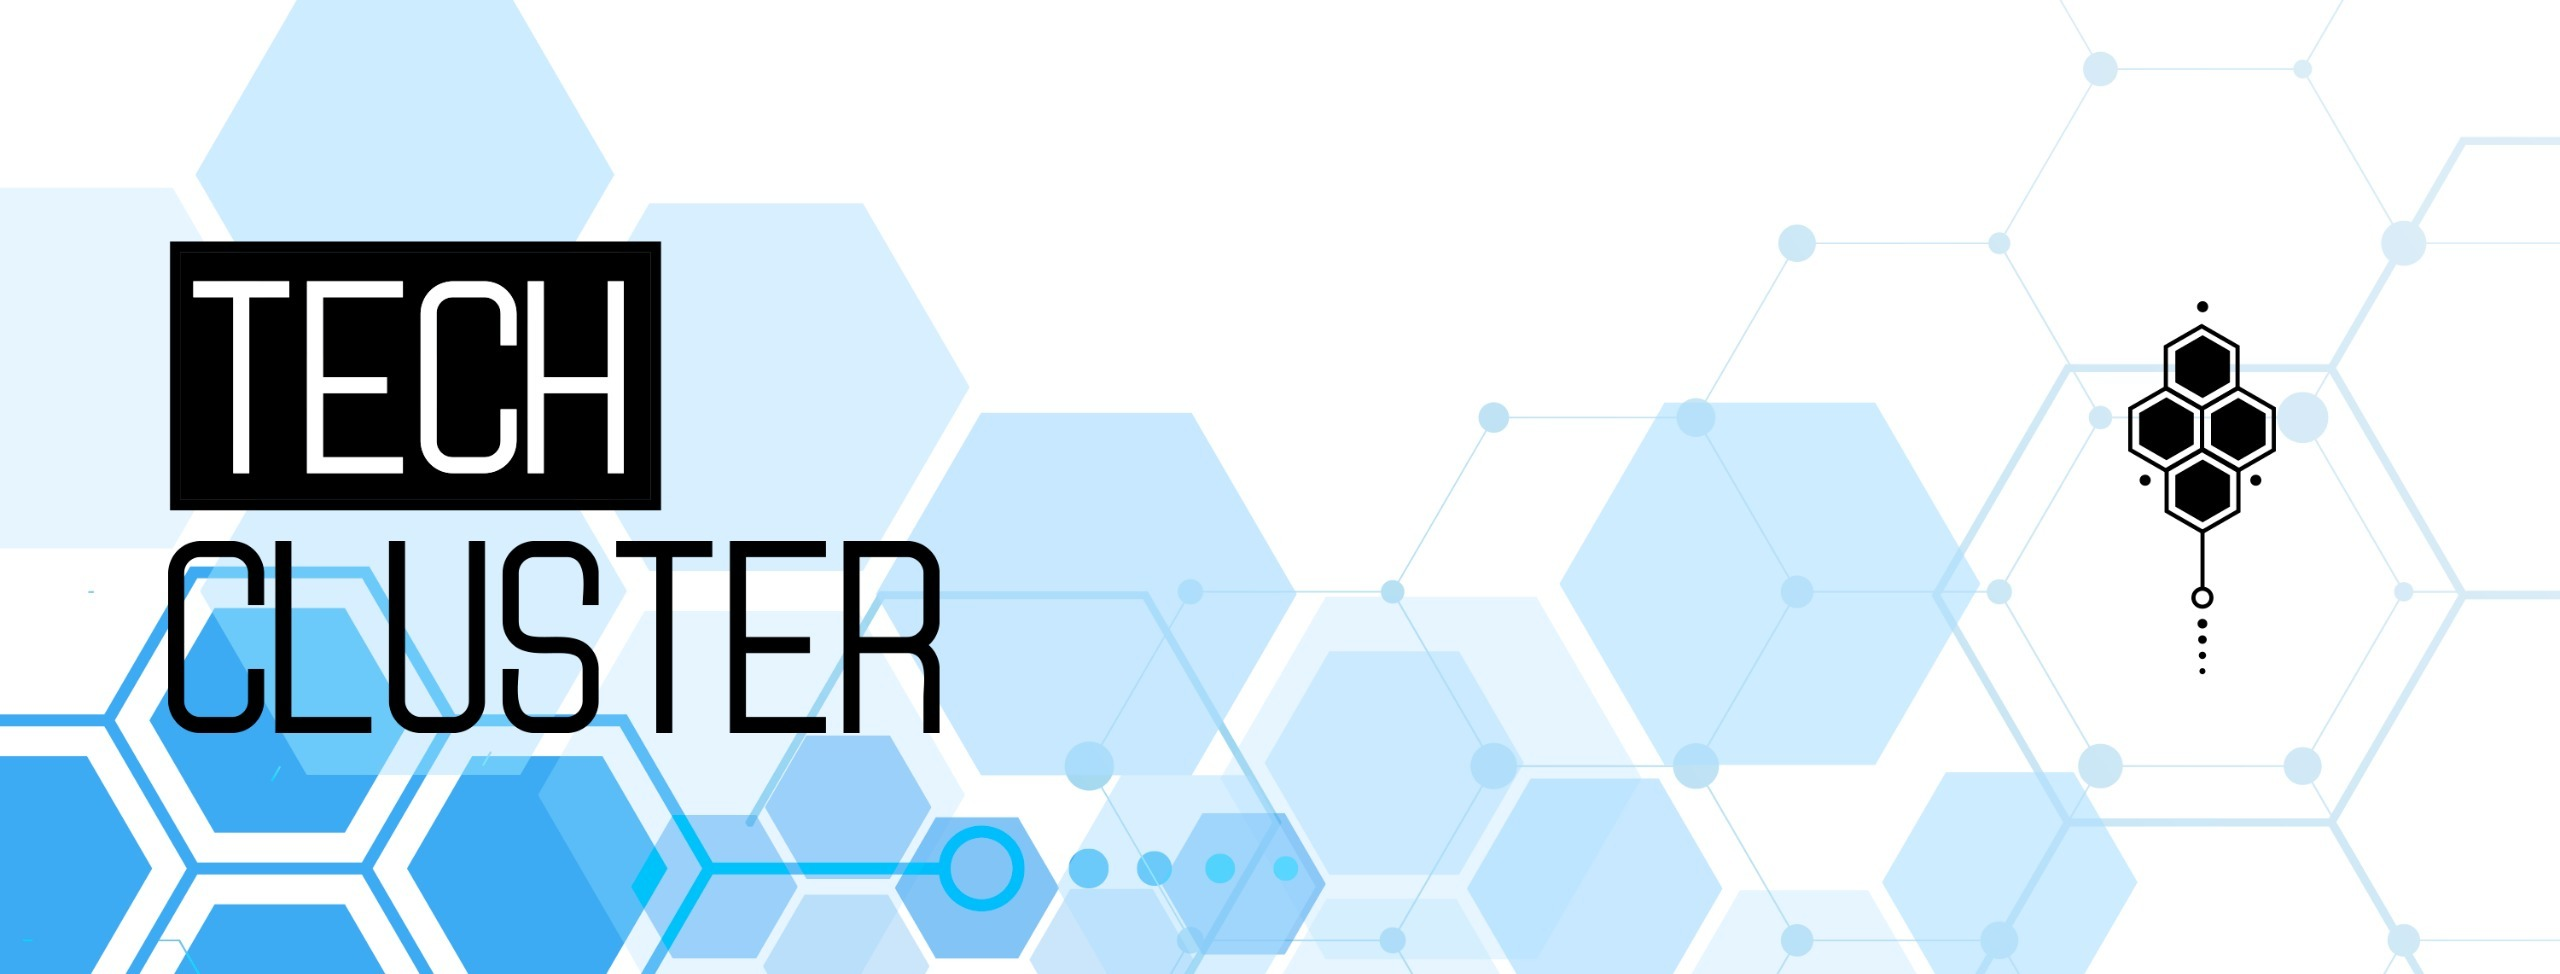 TECH CLUSTER (@tech_cluster) Cover Image